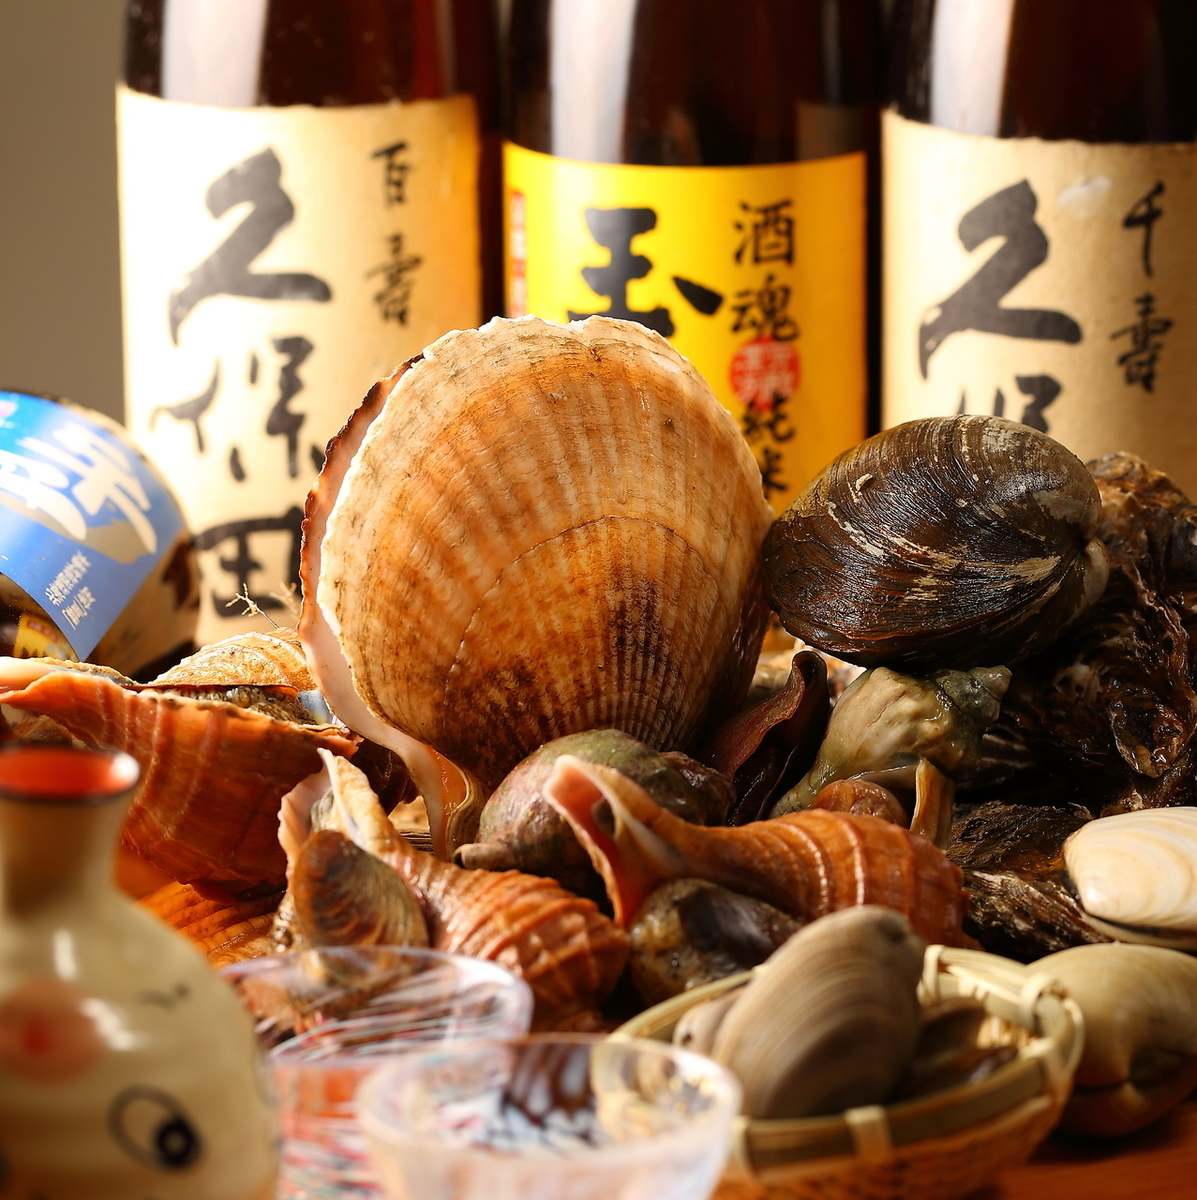 10 kinds of local sake brewed 120 minutes All you can drink 2080 yen ⇒ 1580 yen